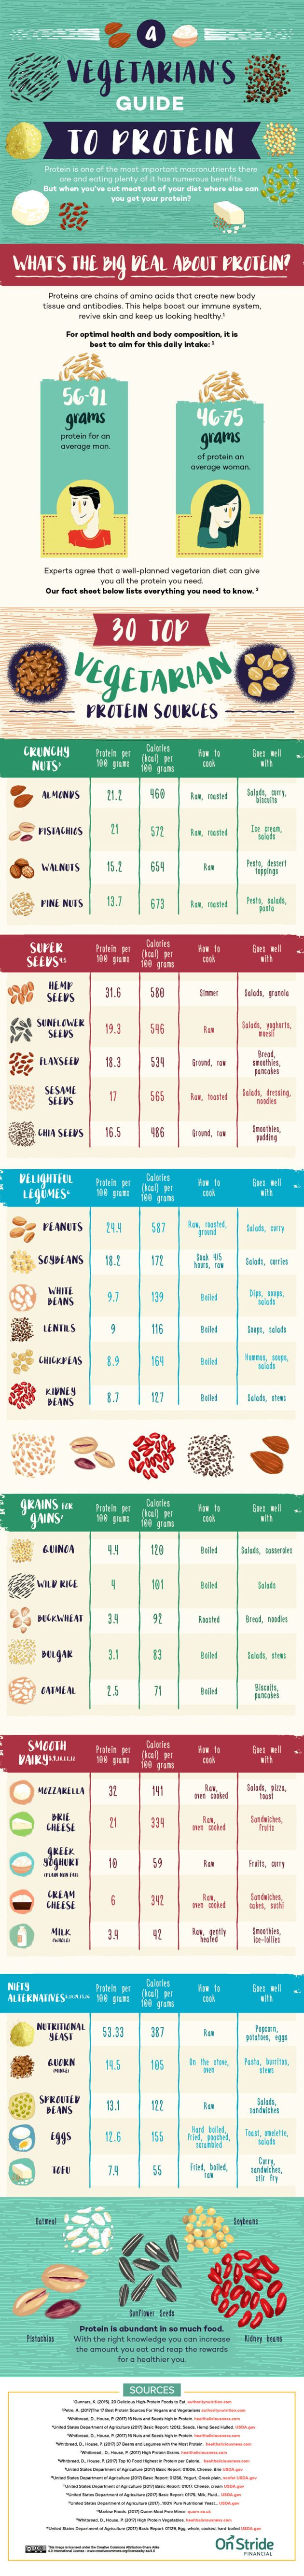 Here's An Easy Guide To Vegetarian